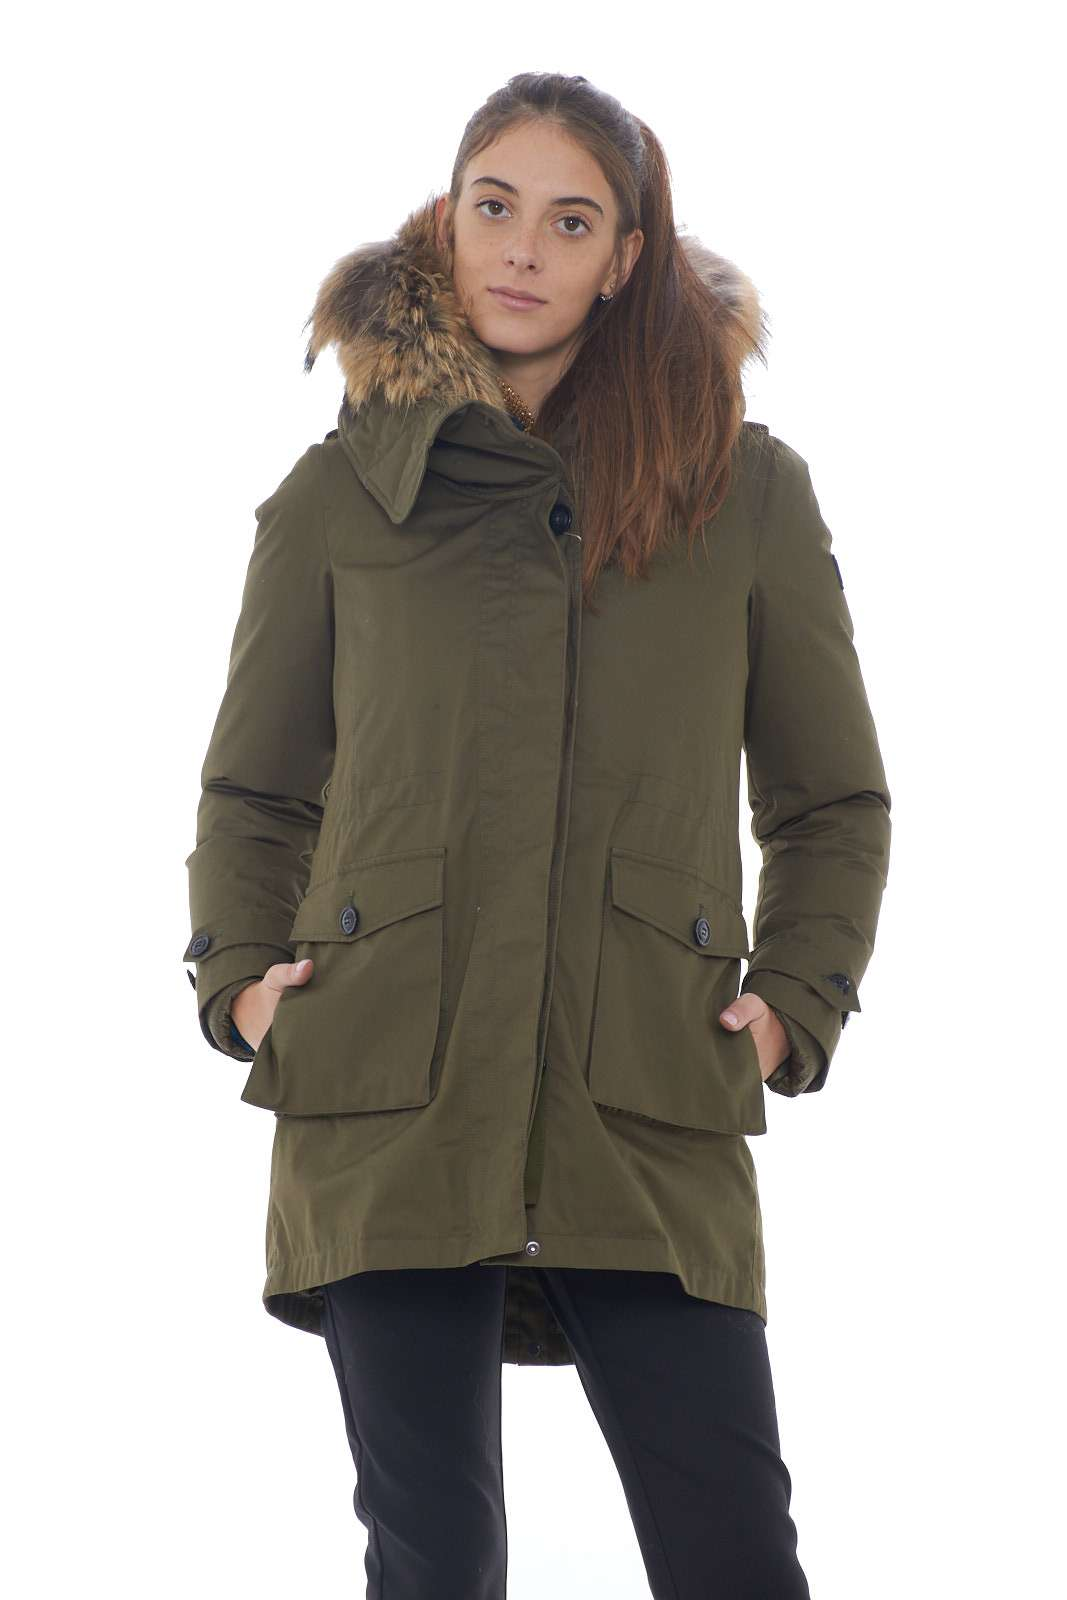 army-olive